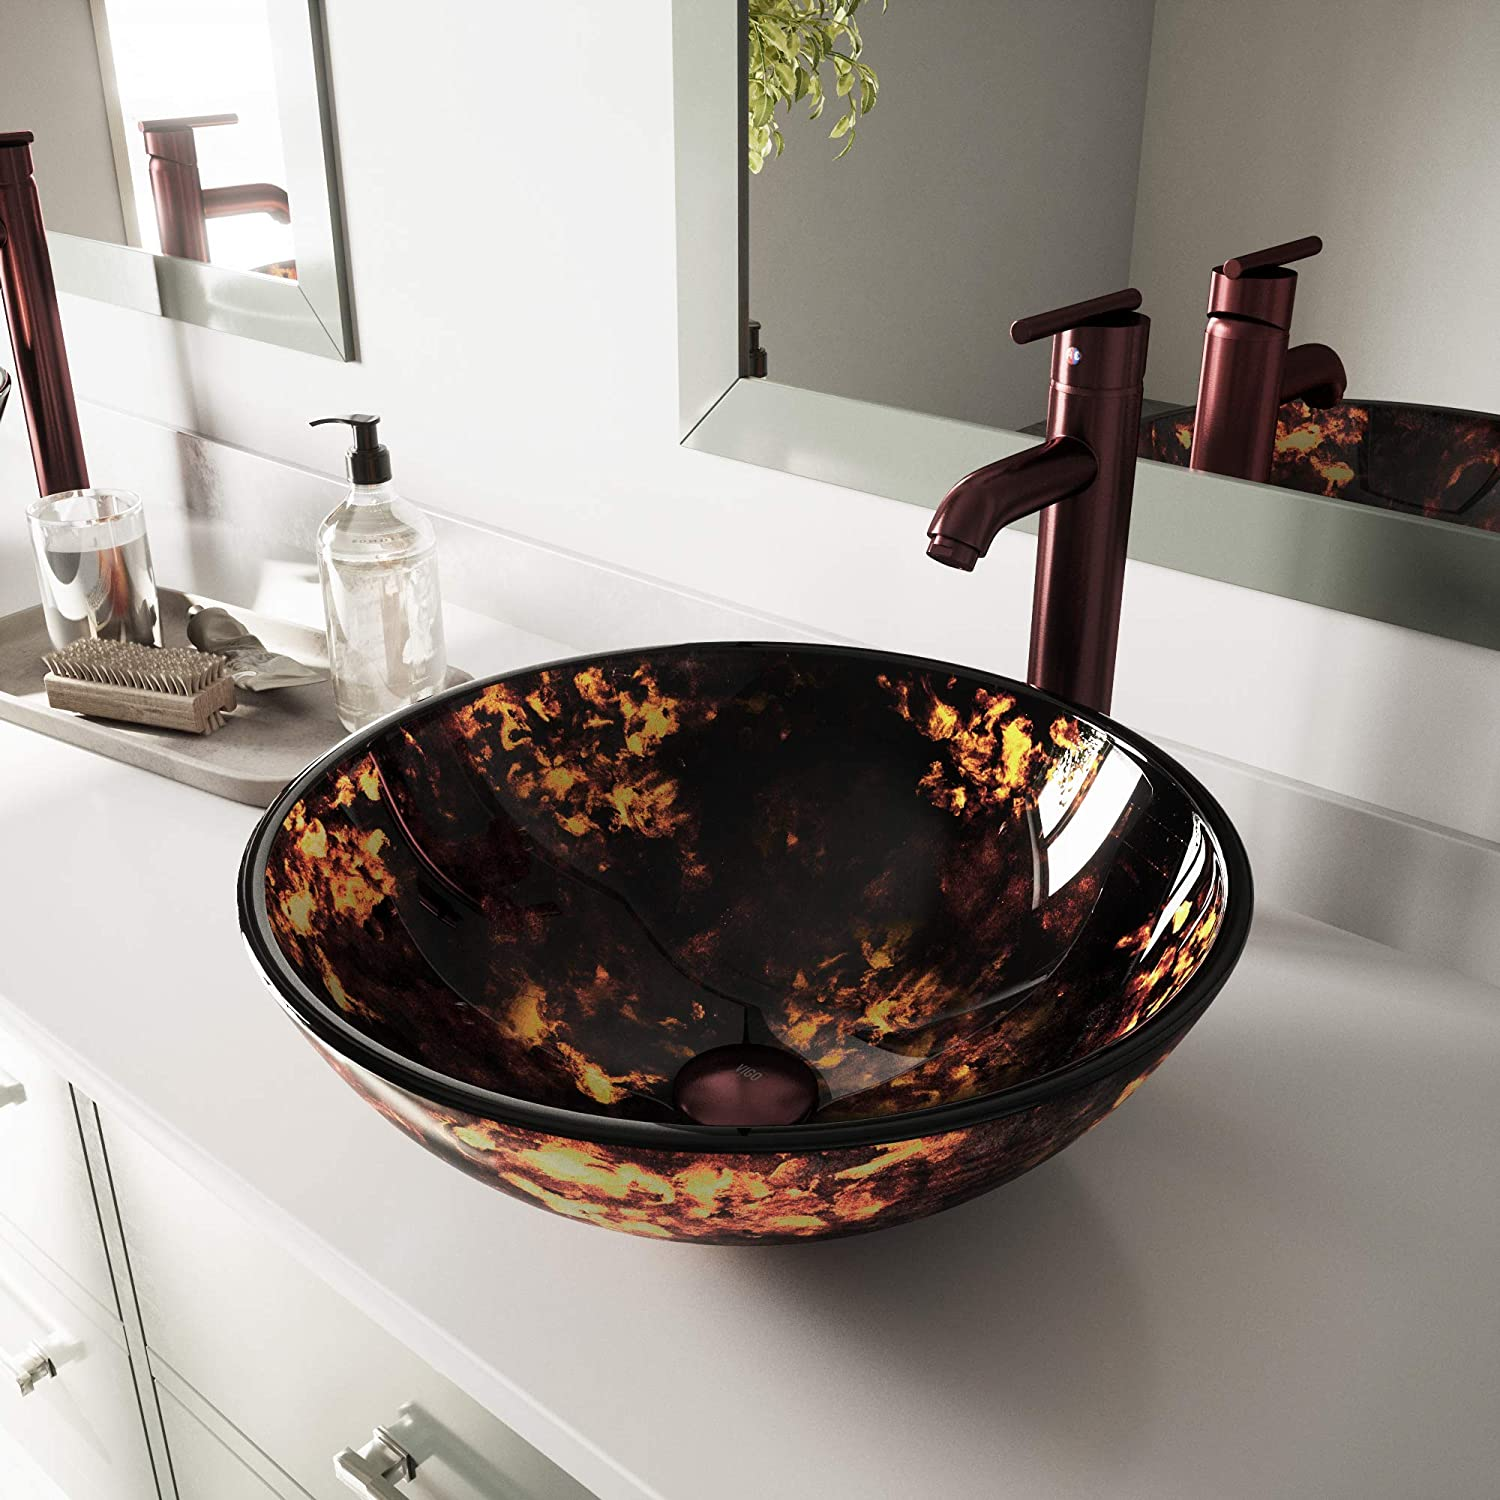 VIGO Brown and Gold Fusion Glass Vessel Bathroom Sink and Seville Vessel Faucet with Pop Up, Oil Rubbed Bronze